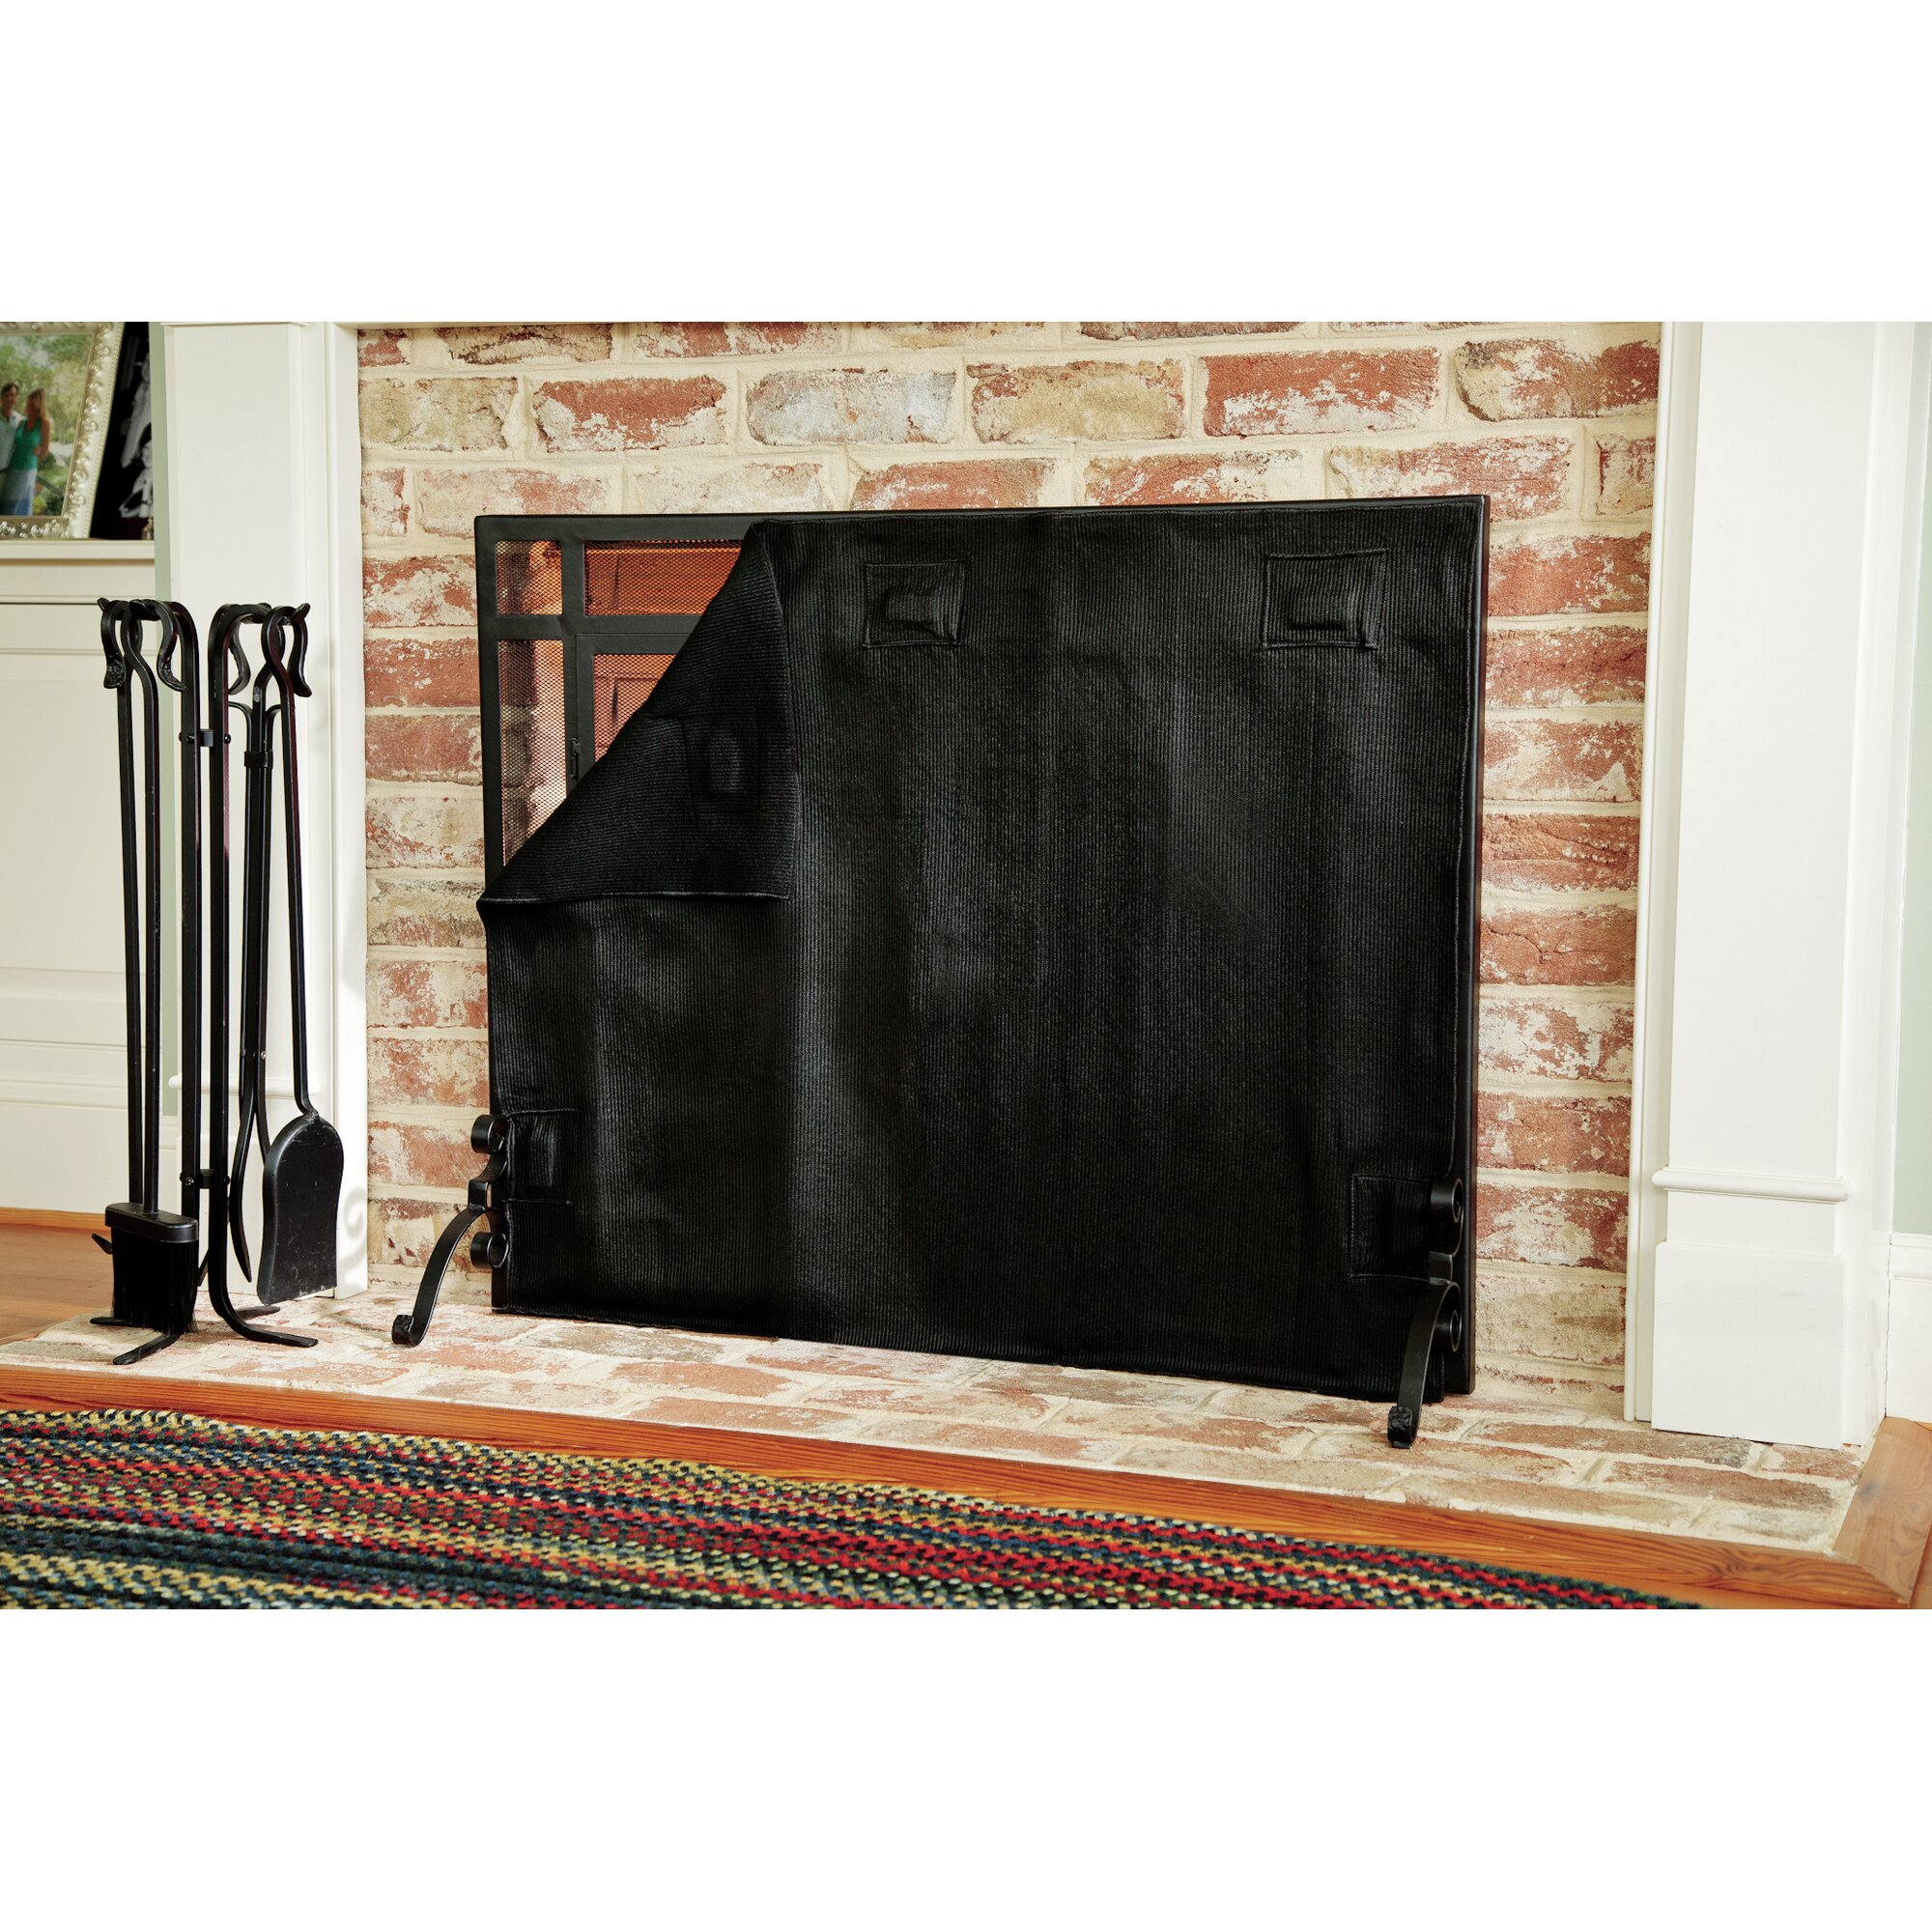 Plow Hearth Fireplace Blanket Reviews Wayfair . Fireplace Night Guard .